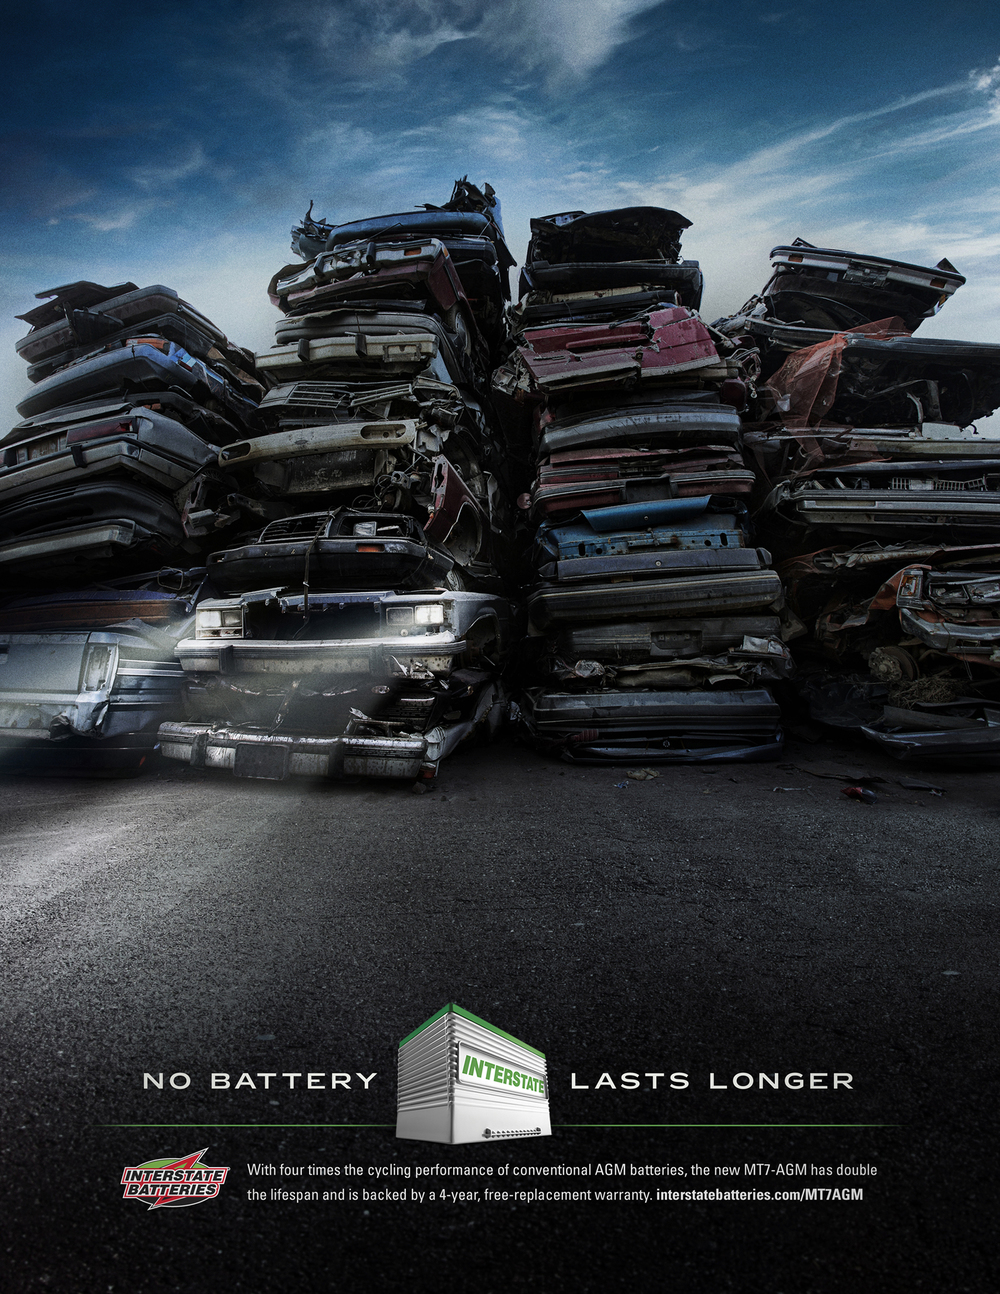 ryan-smith-creative-director-interstate-batteries-stack